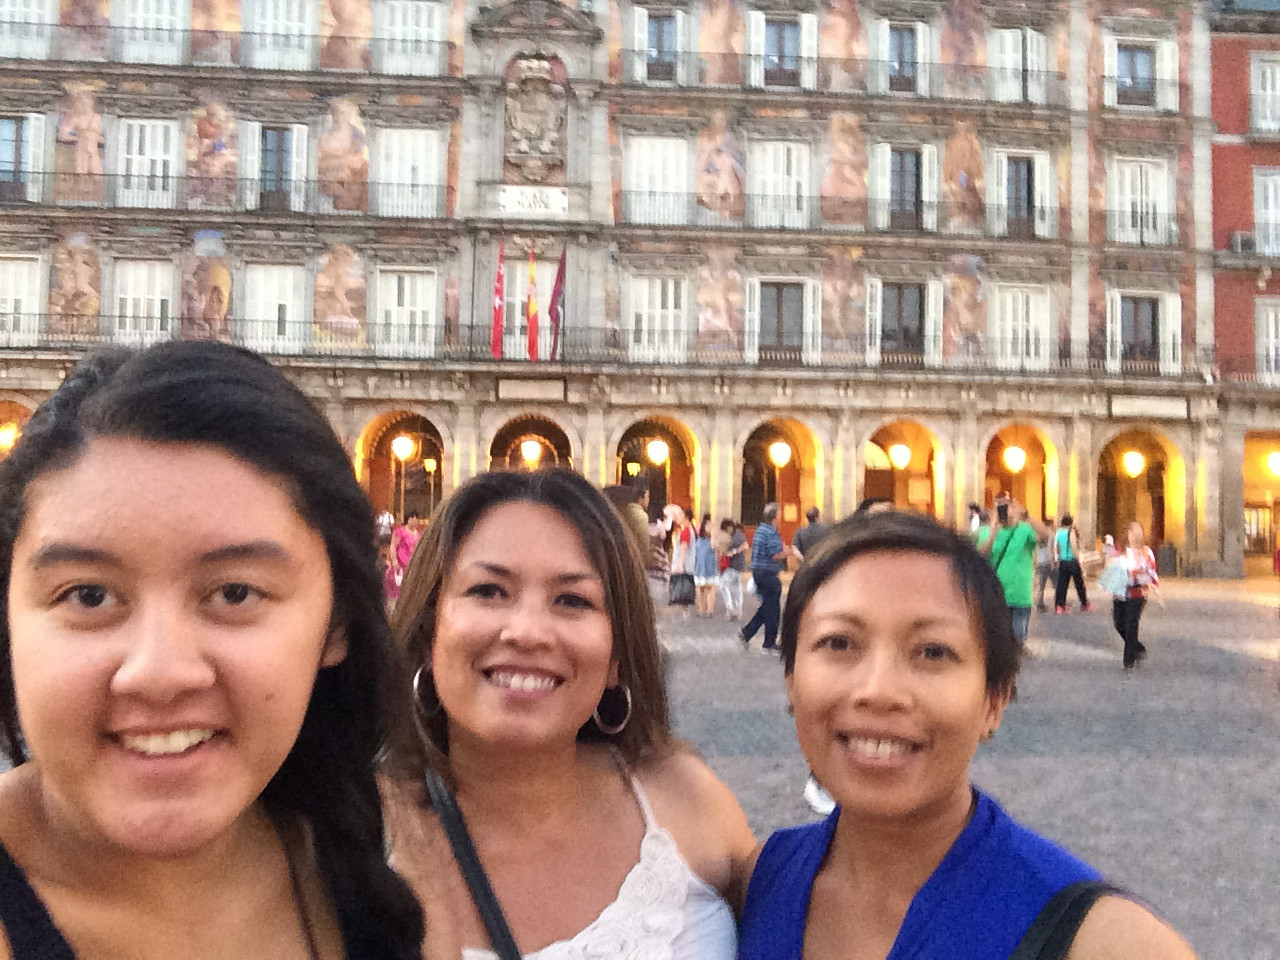 Walked through the famous Plaza Mayor before heading to our flamenco show.